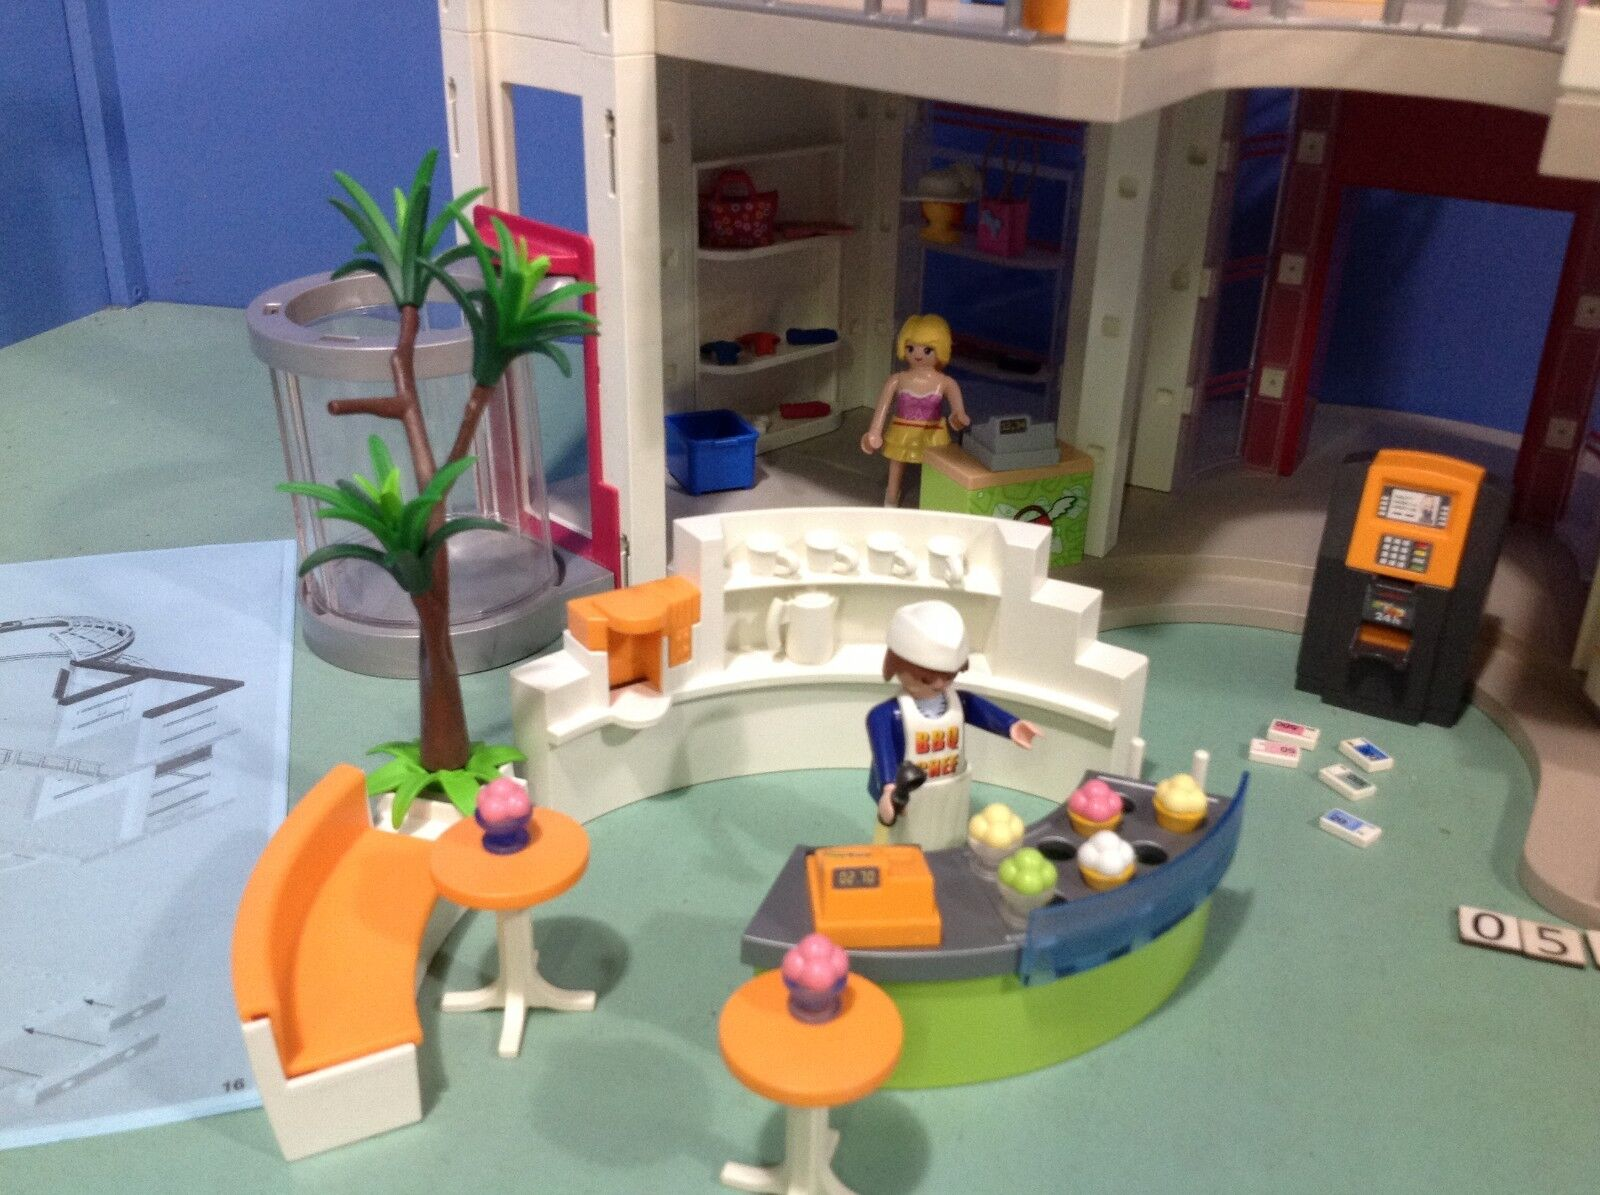 (O5485.9) Playmobil grand magasin ref ref ref 5485 + extension ref 5486 270eb0